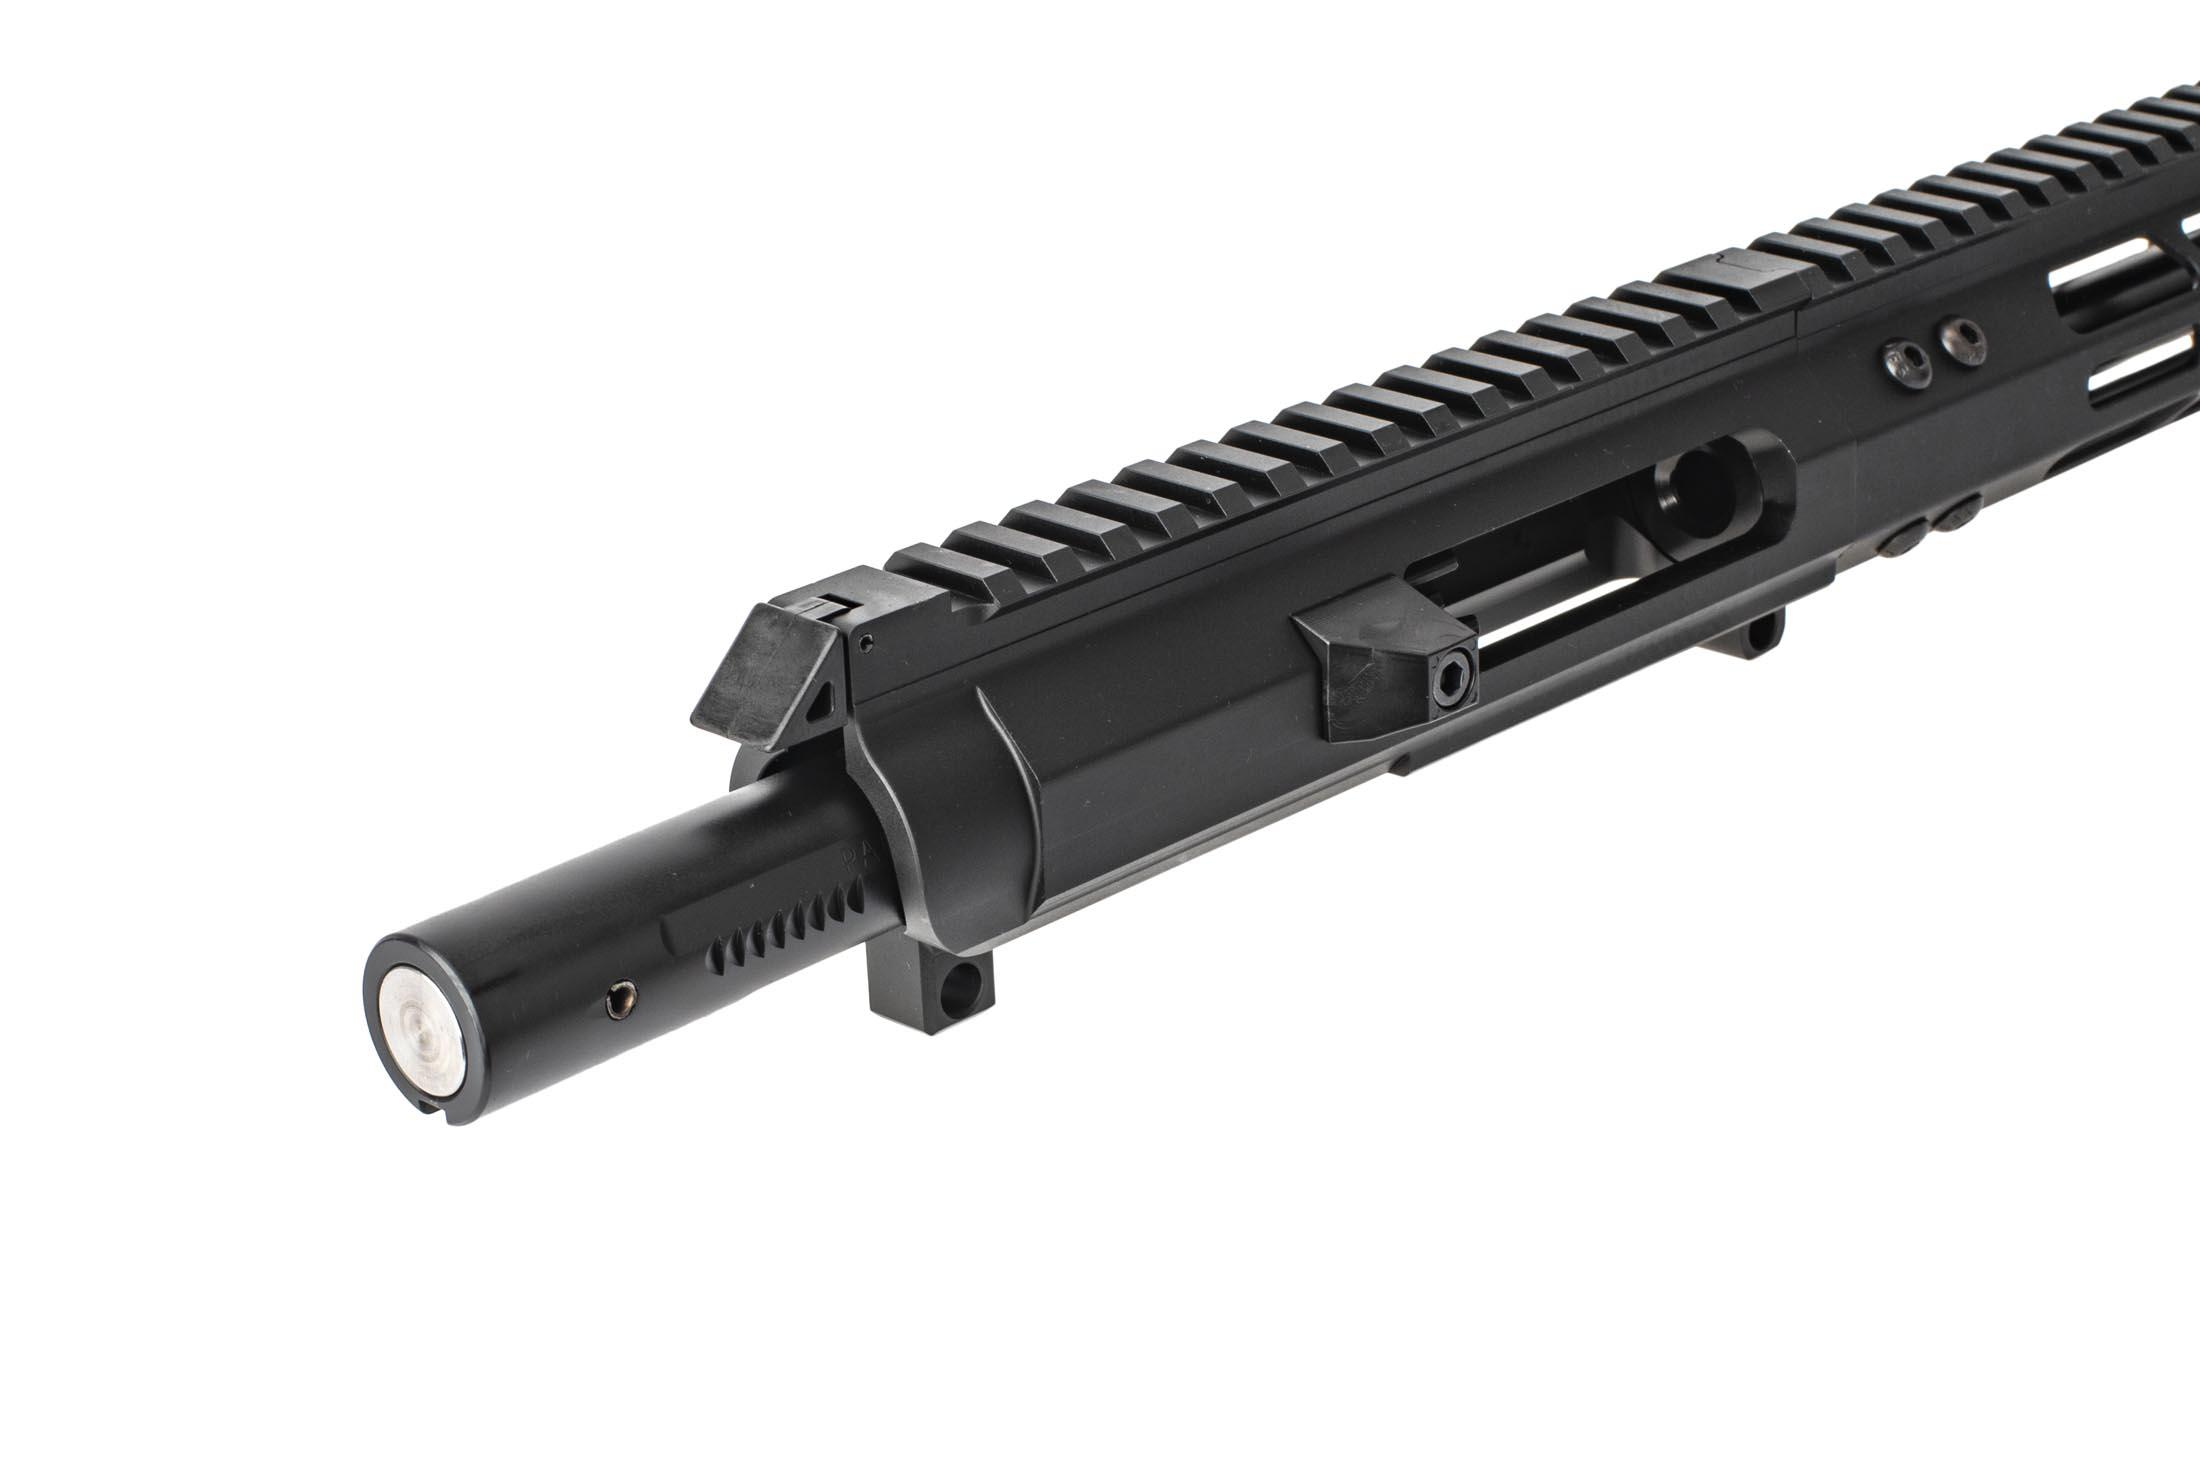 "Foxtrot Mike Products Complete 9mm AR Upper 9.25 Colt Style - 10"" M-LOK Rail - Blast Diffuser"